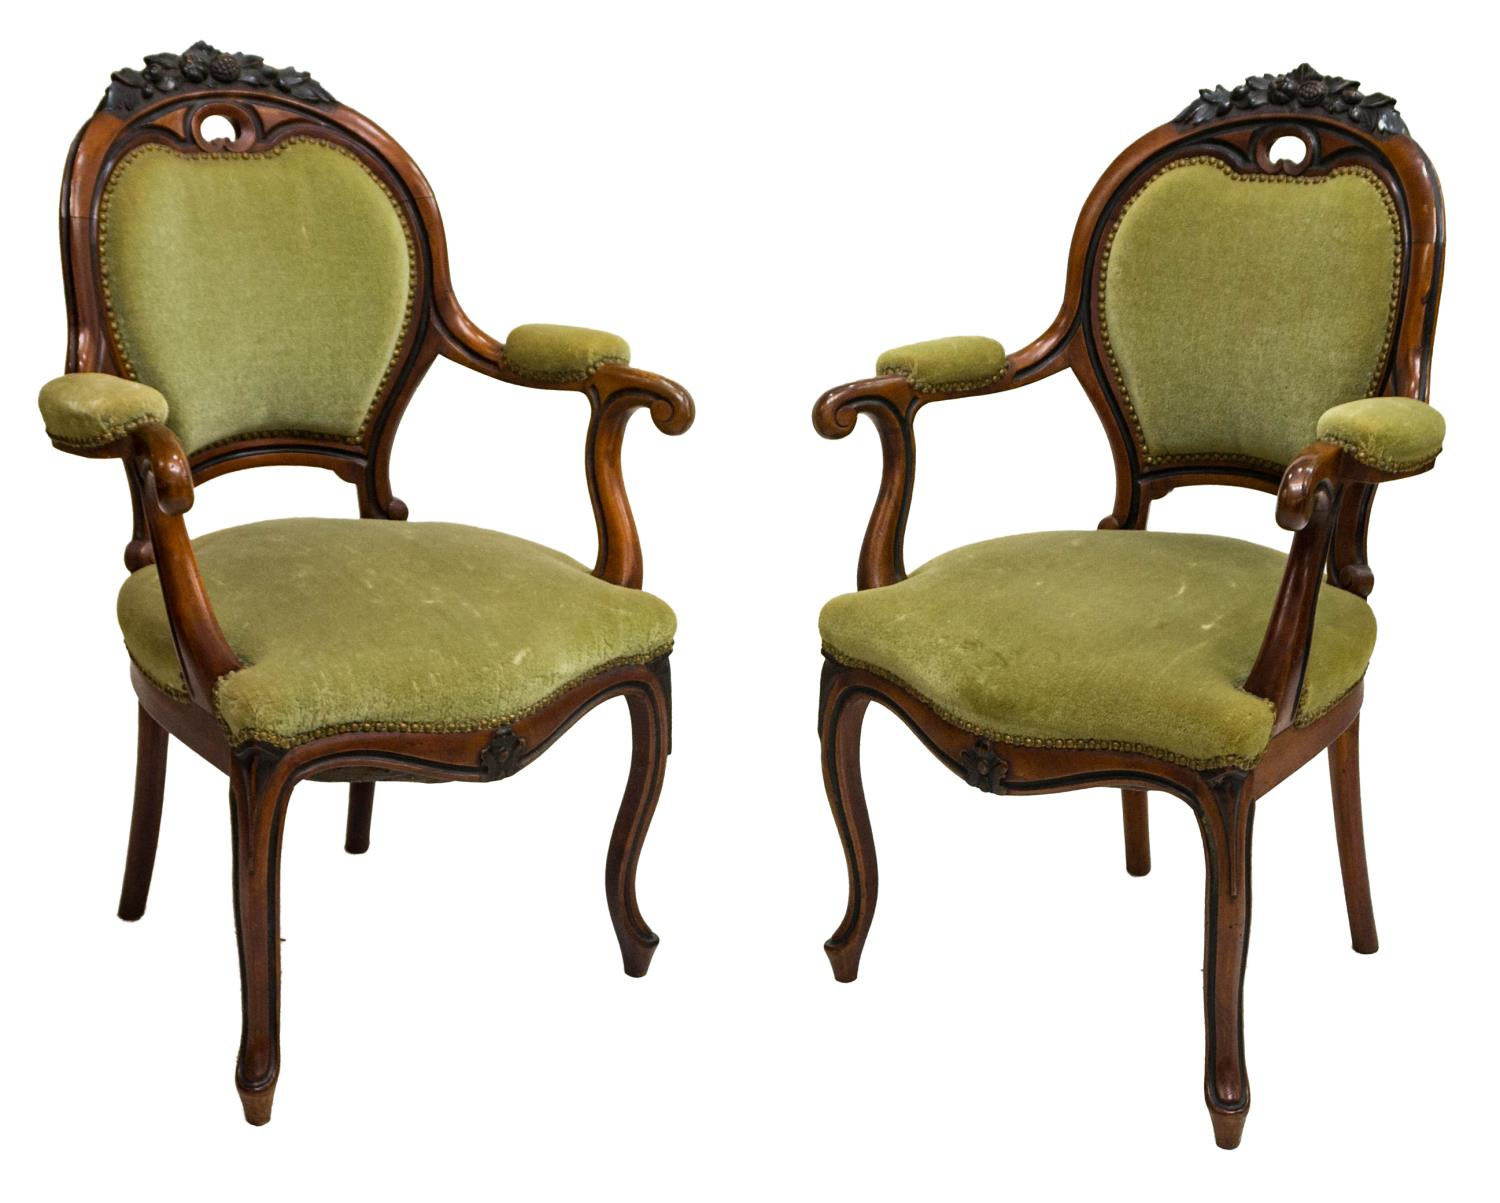 victorian parlor chairs posture chair for elderly 2 american open arm 19thc the